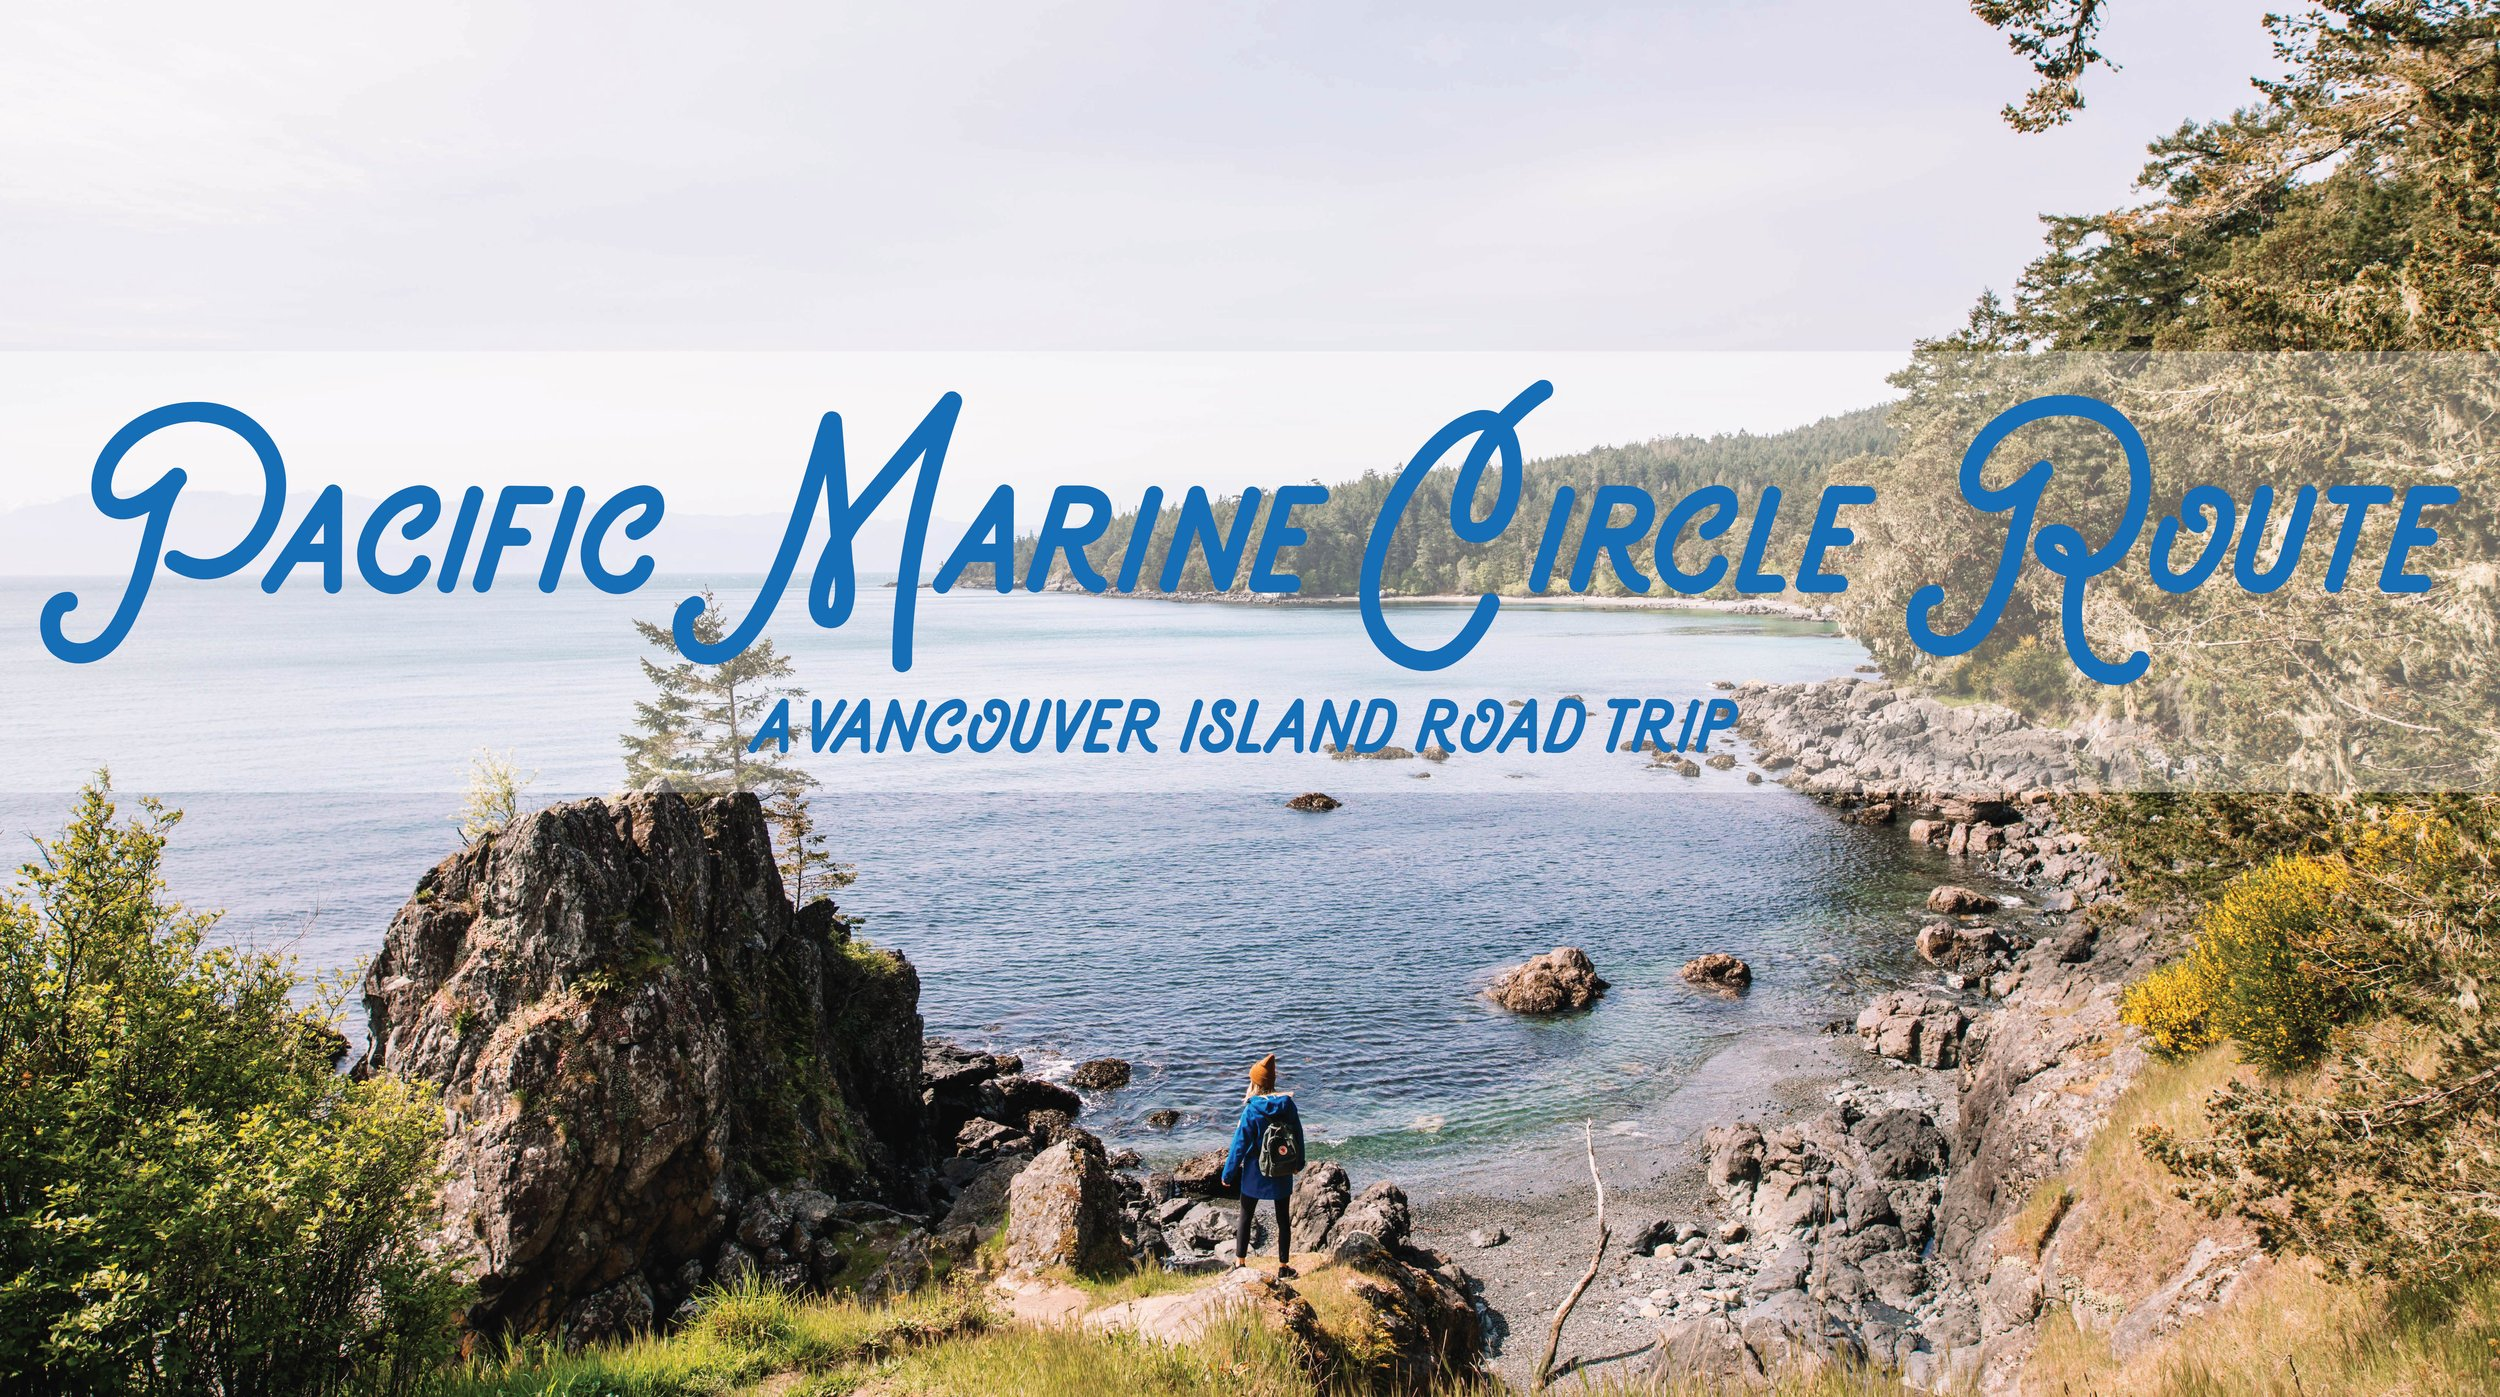 Pacific Marine Circle Route - A Vancouver Island Road Trip